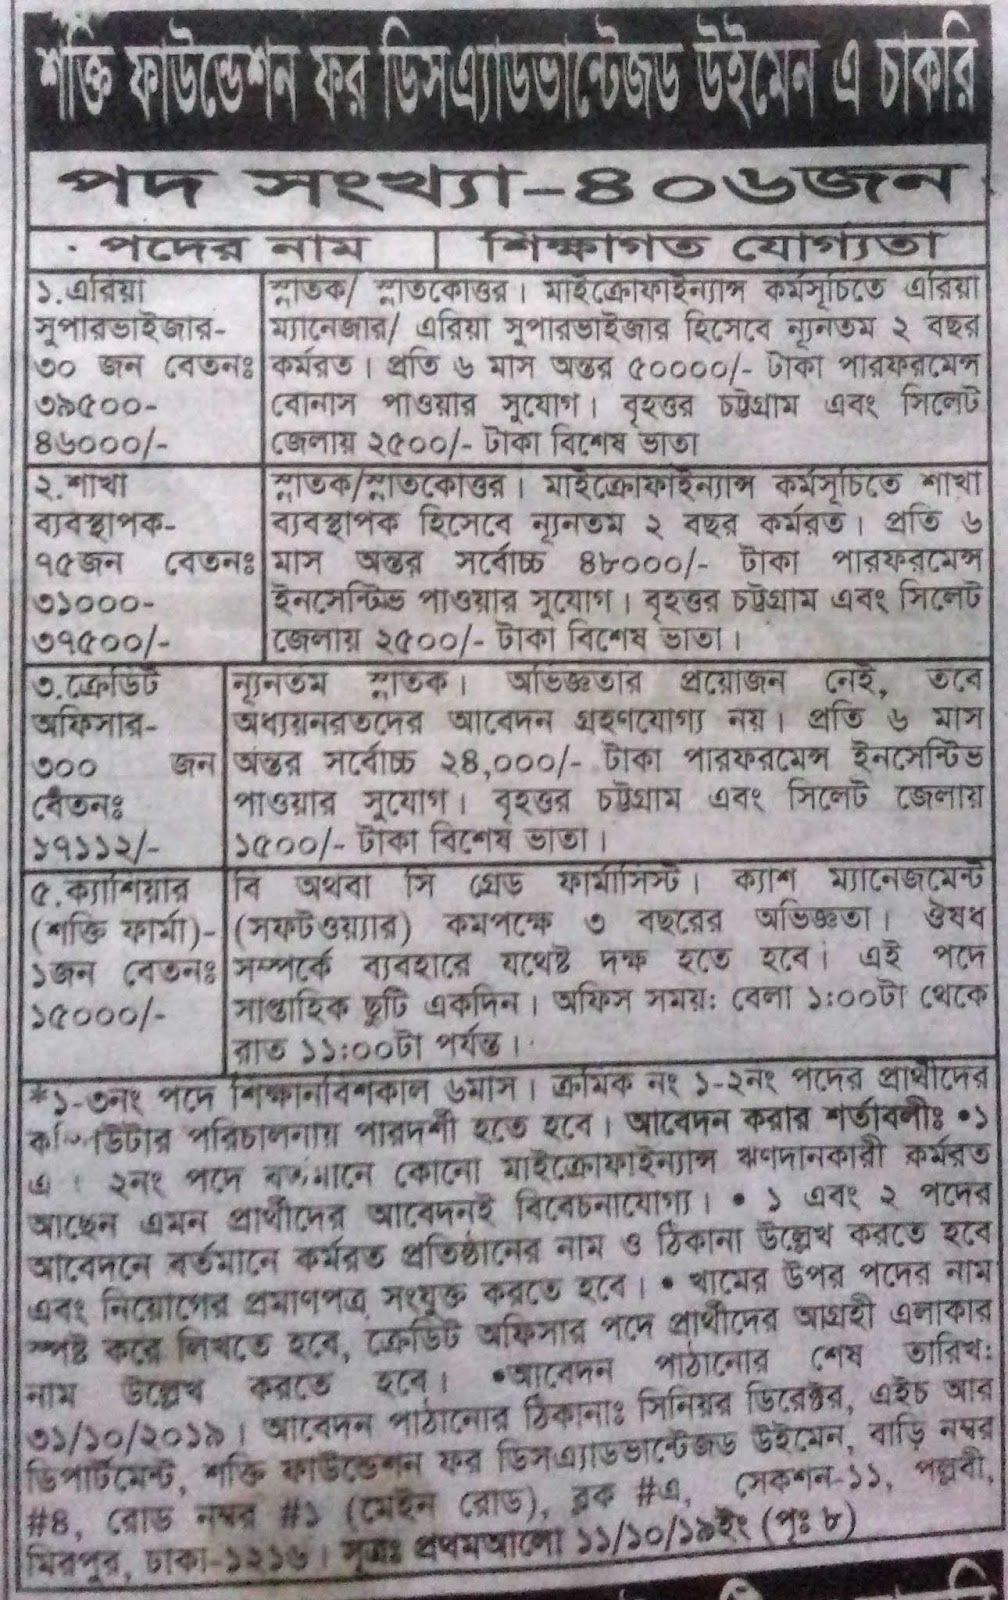 Shakti-Foundation-ngo-job-circular 2019